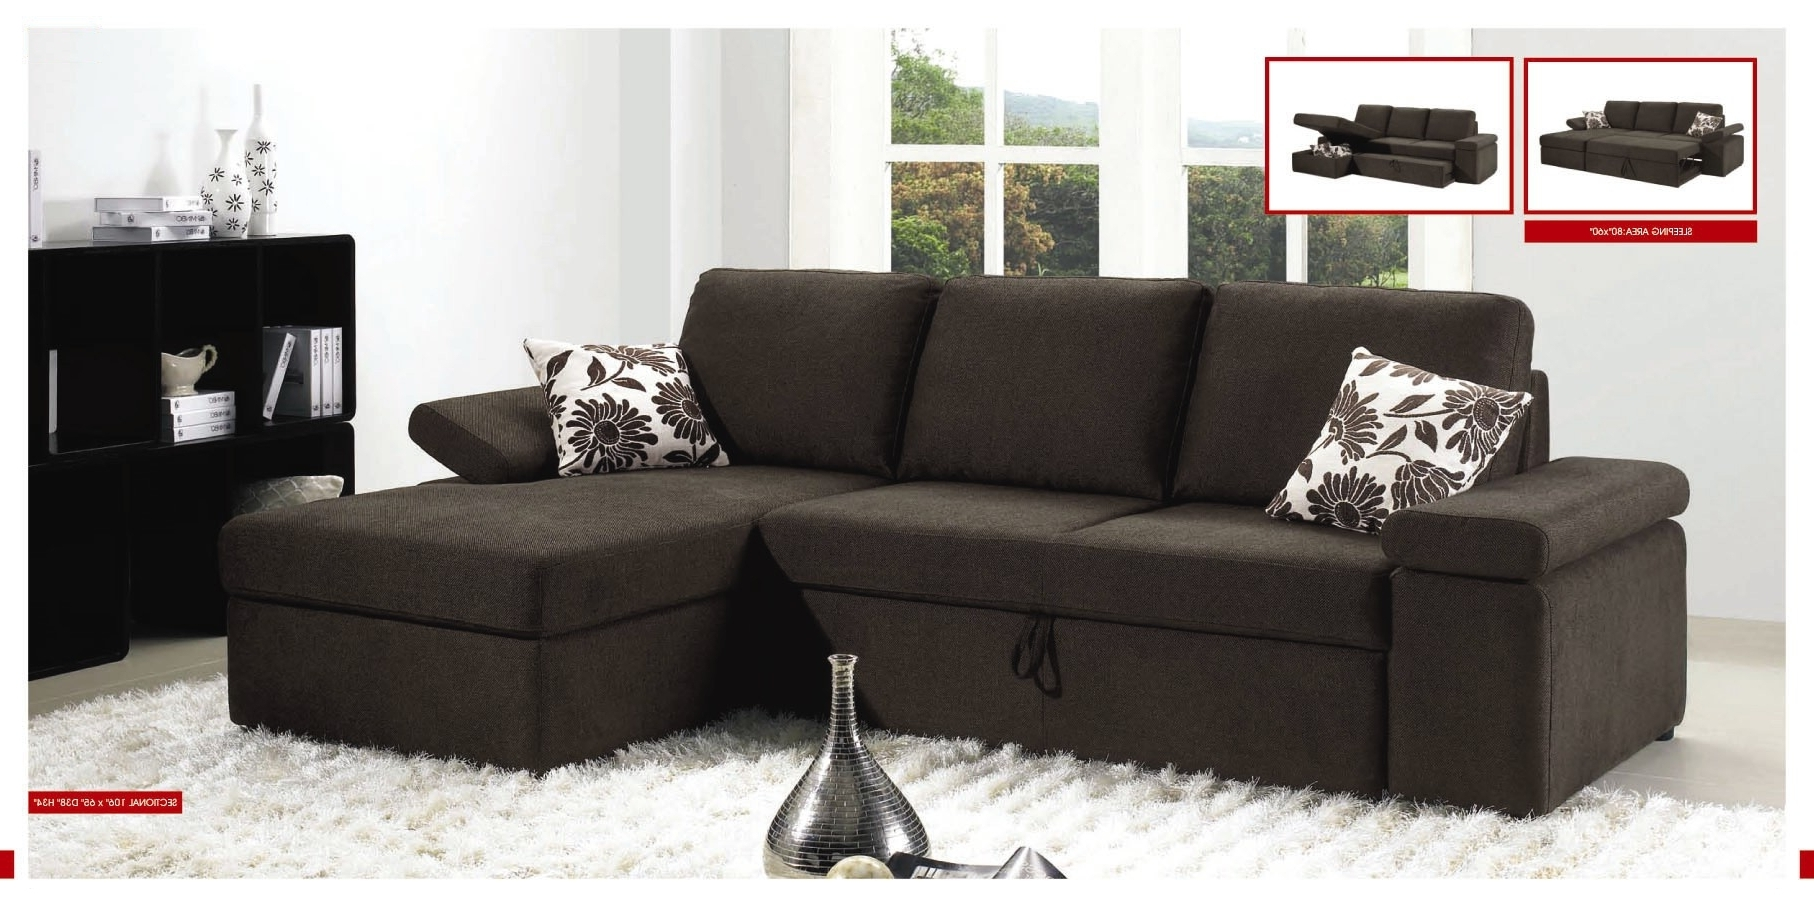 Sleeper Sofas With Chaise And Storage Inside Well Liked Sectional Sleeper Sofa With Storage (View 7 of 15)